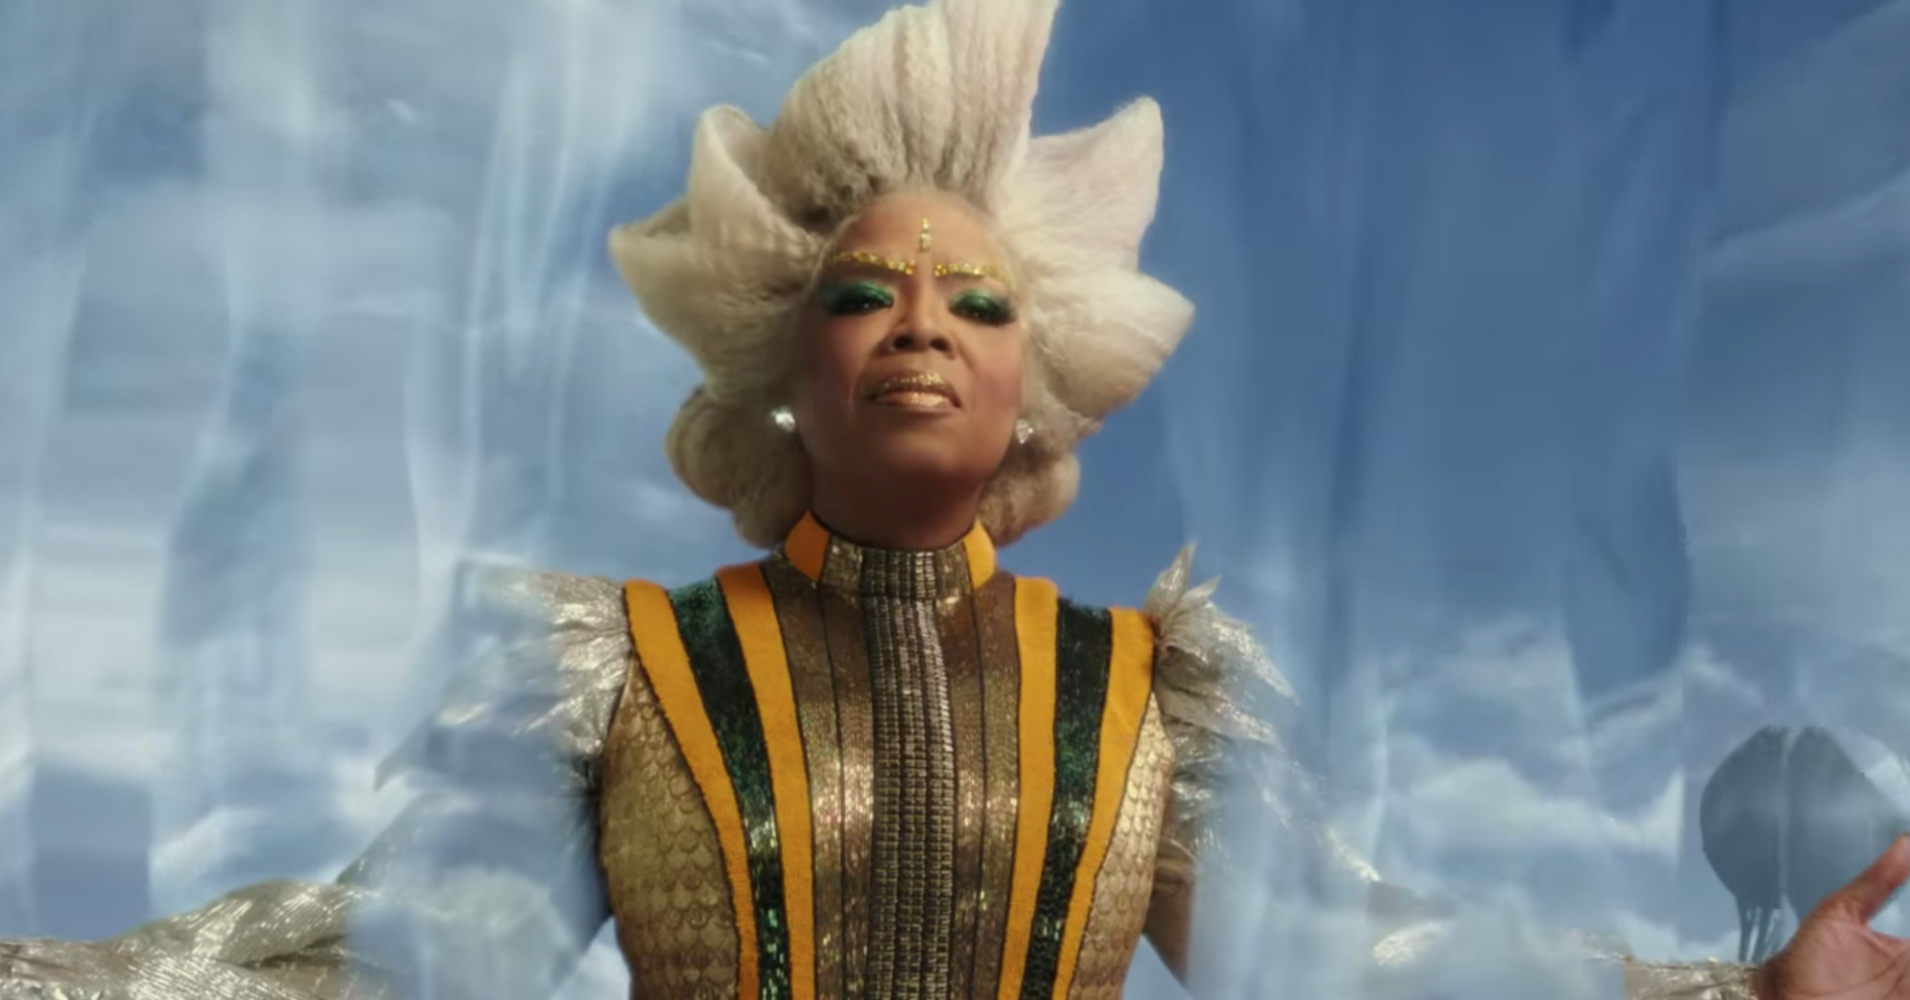 Here's The Reason Oprah Is So Dang Big In 'A Wrinkle In Time'